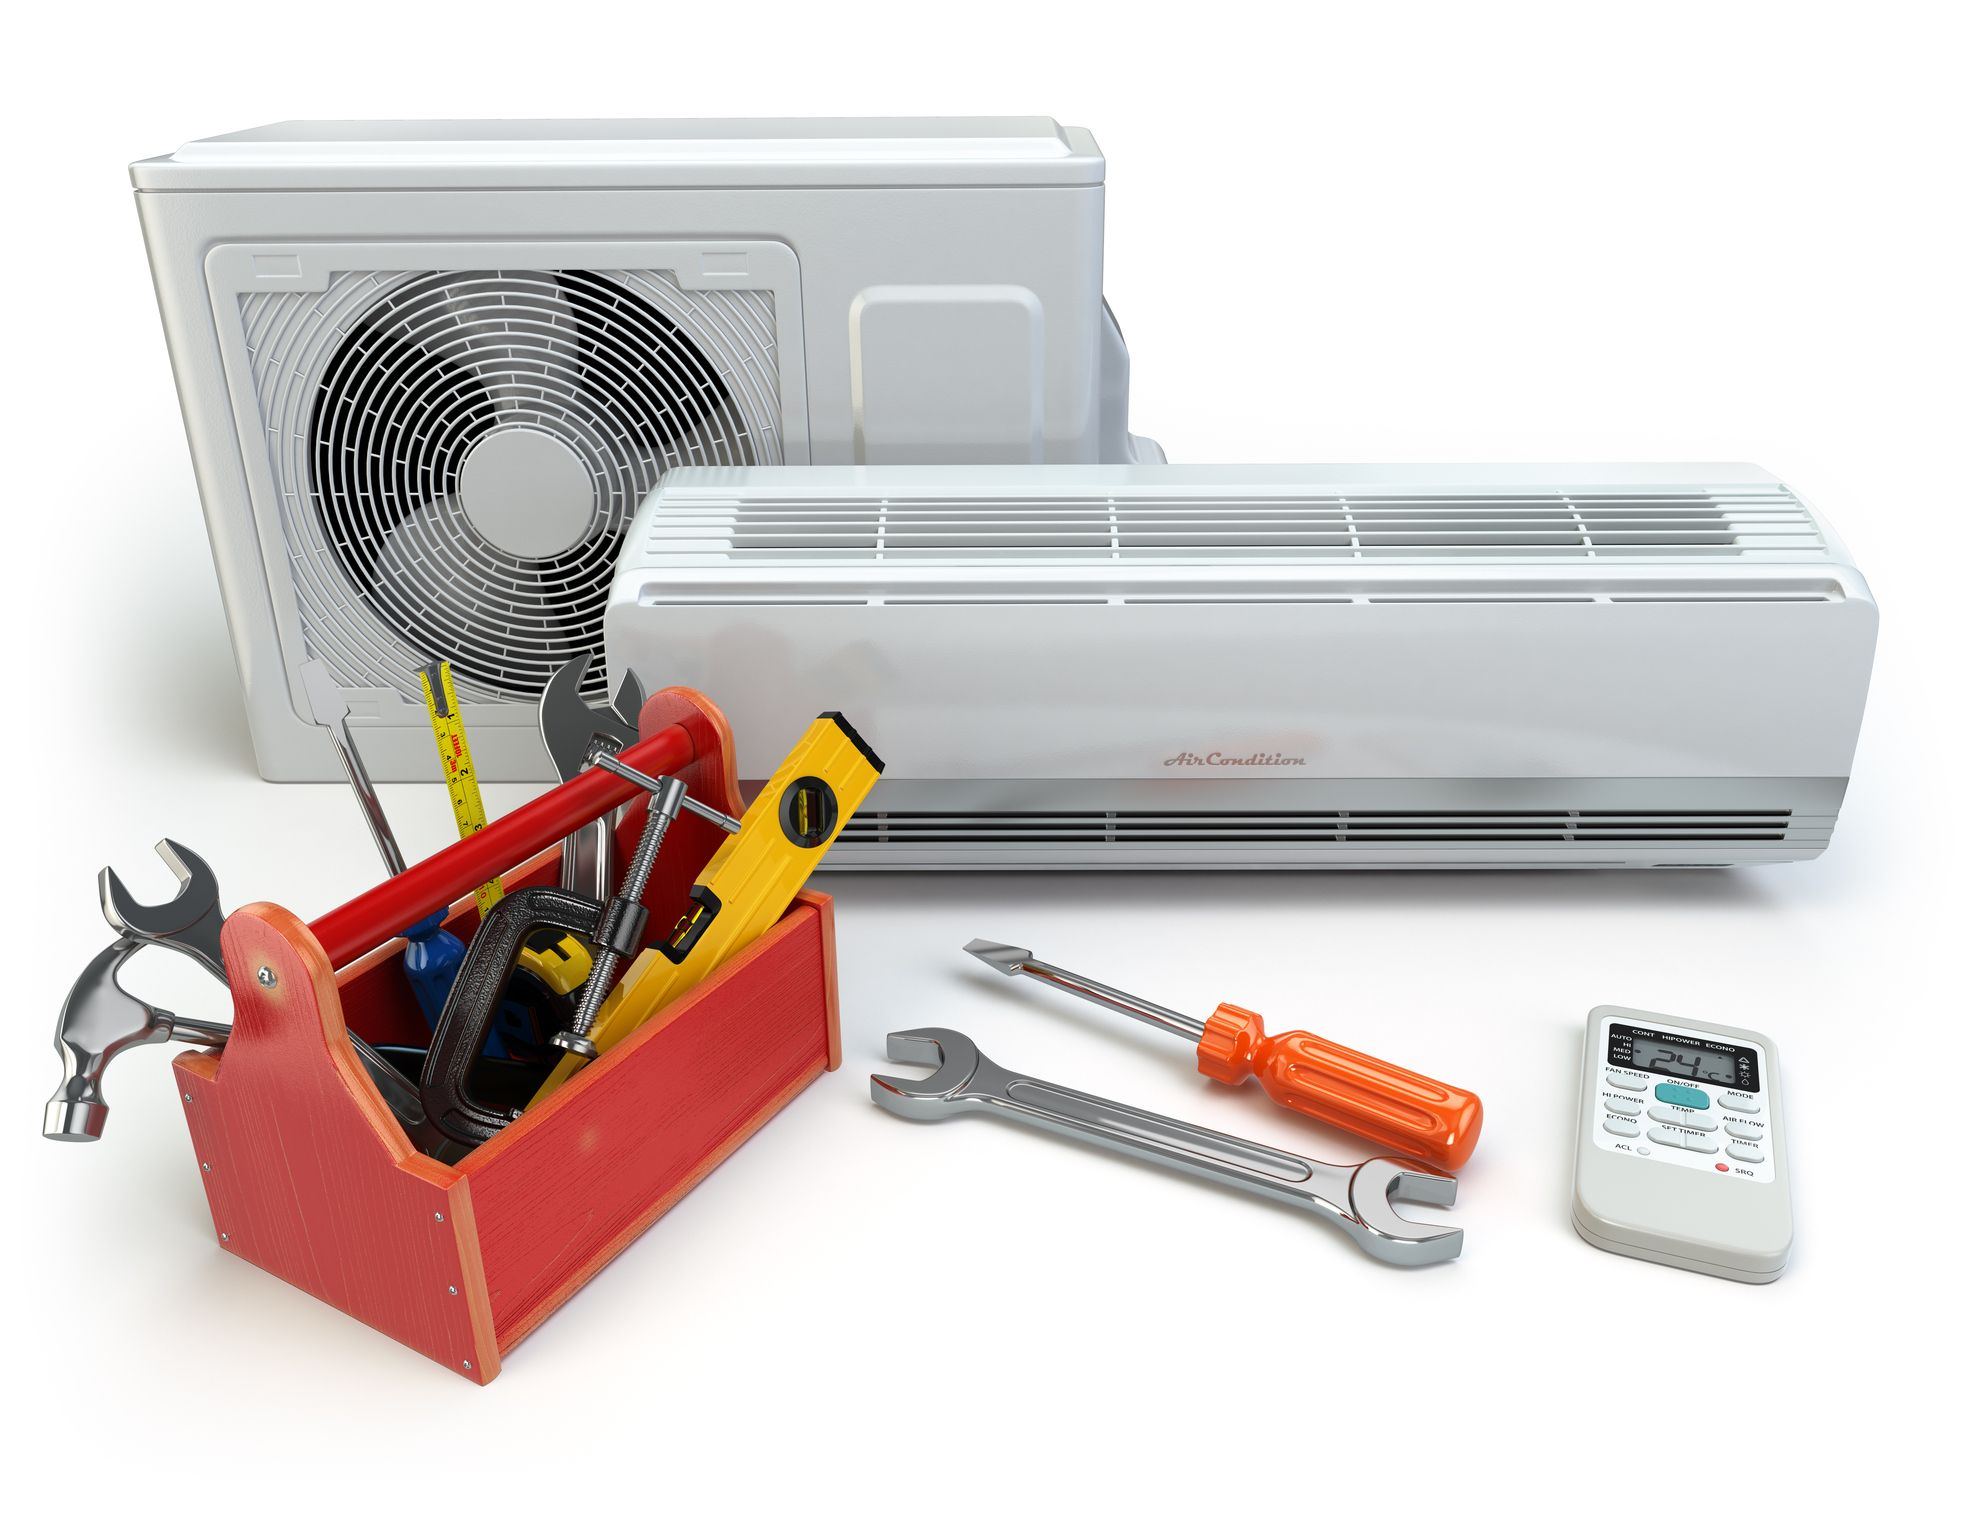 Air Conditioning system and tools for ac and duct repair services